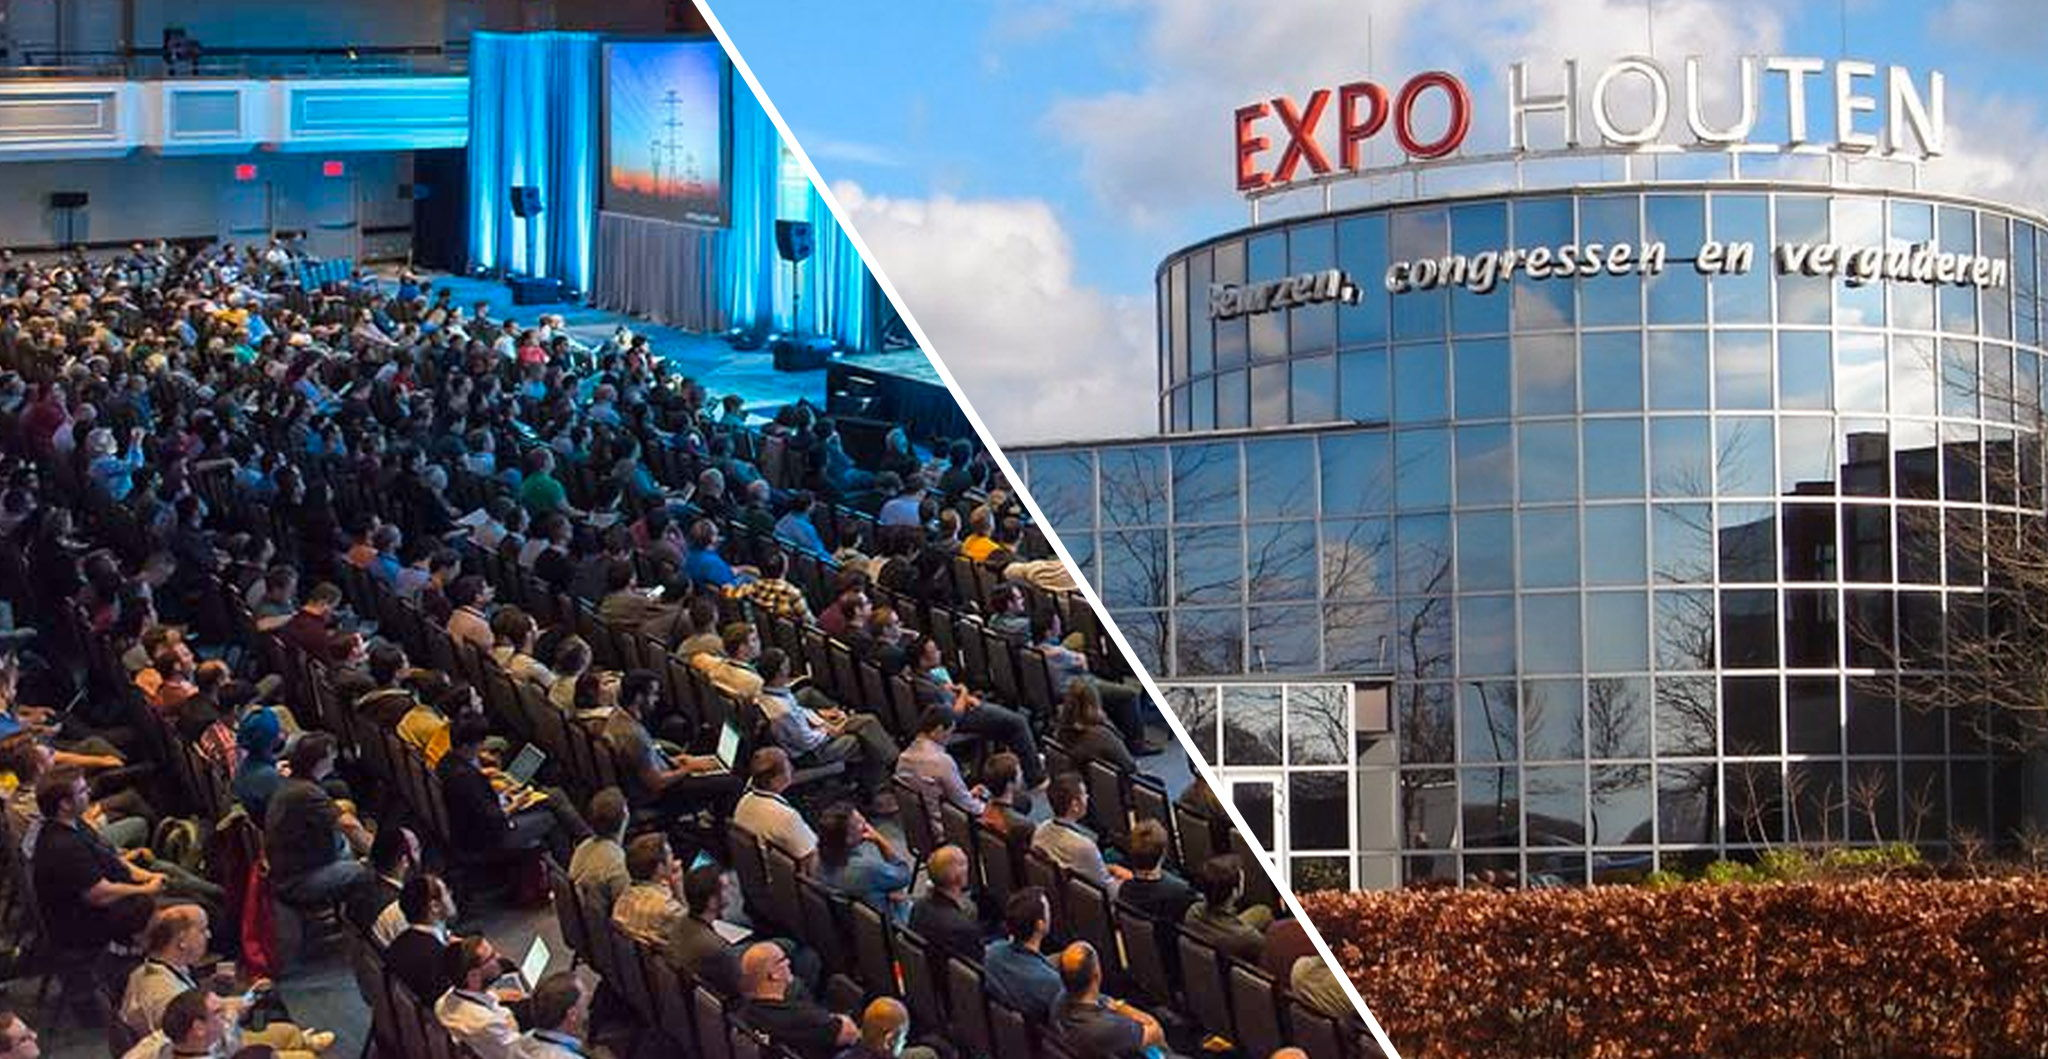 Collage of Expo Houten building and audience